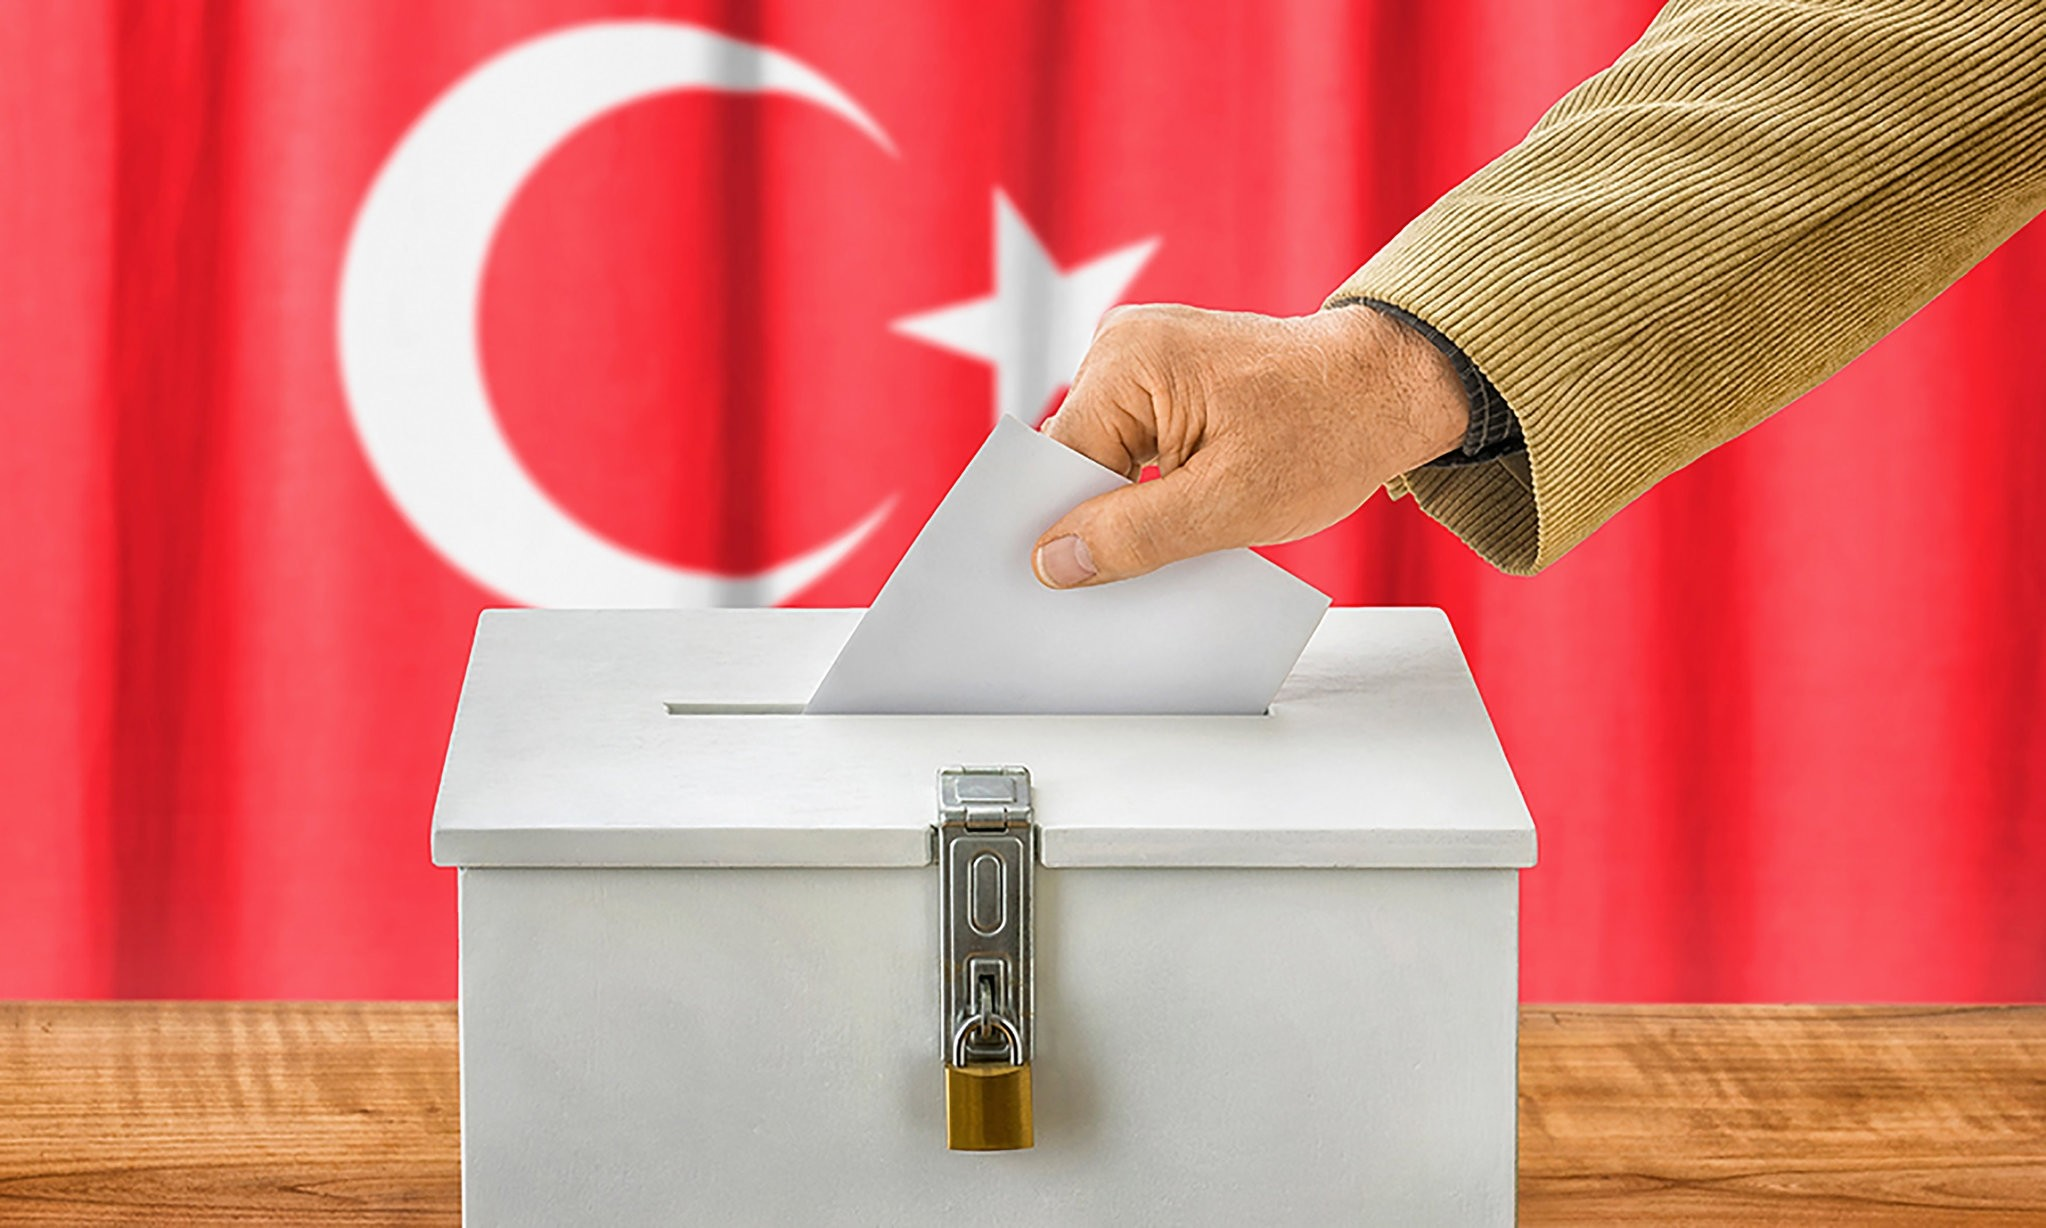 Turkey will head to the polls on June 24 for both presidential and parliamentary elections. There will be six candidates running in the presidential elections.